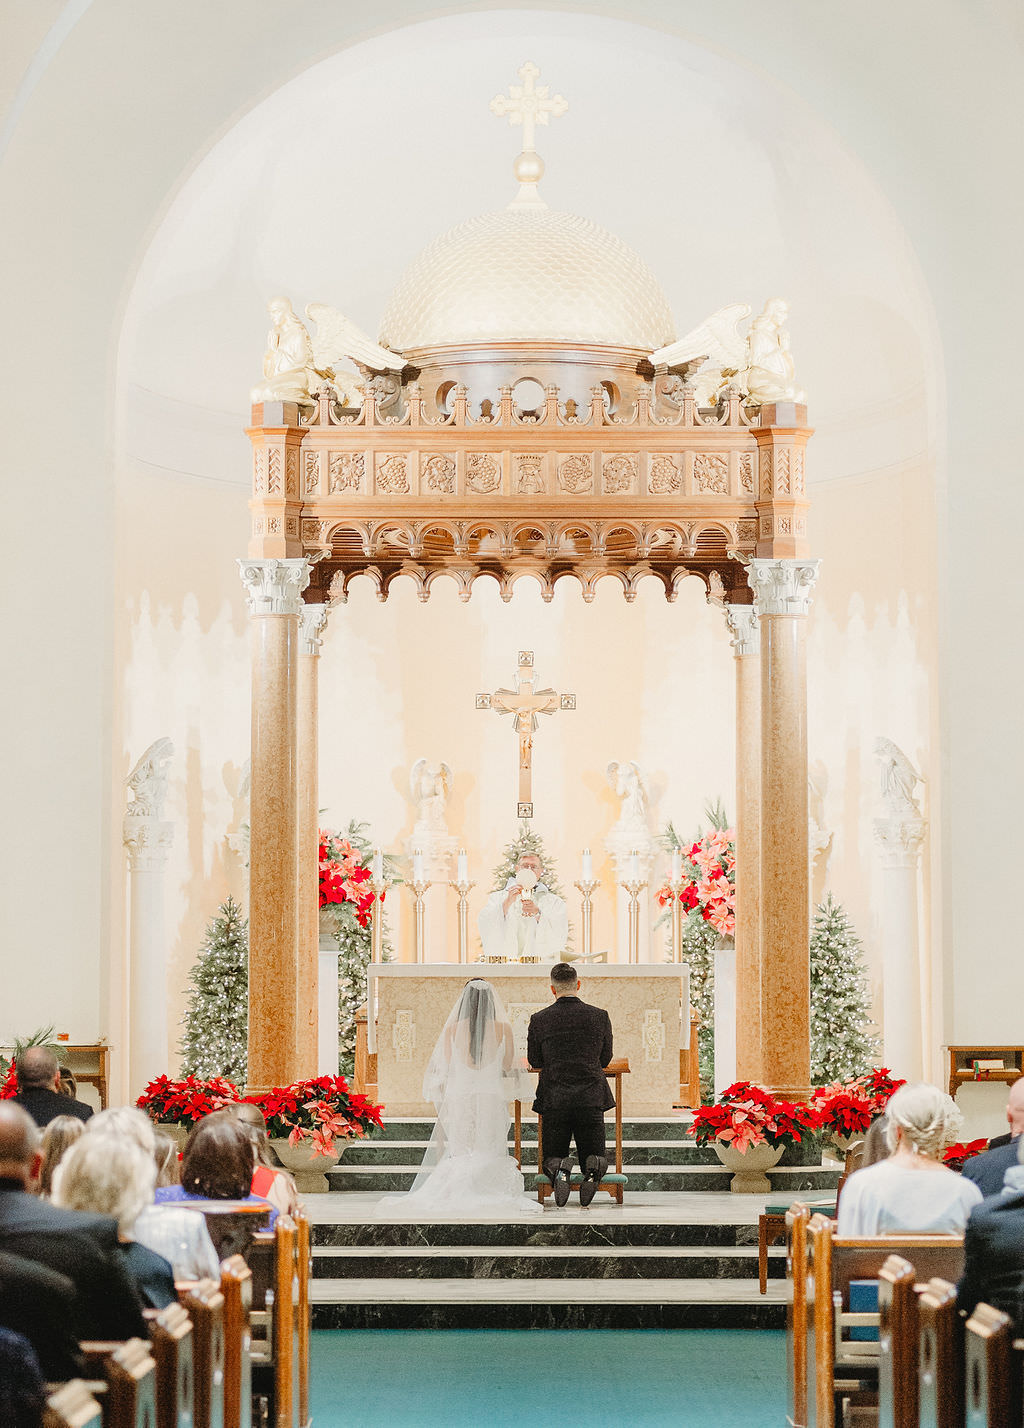 Florida Bride and Groom During Traditional Catholic Church Wedding Ceremony Kneeling at Altar